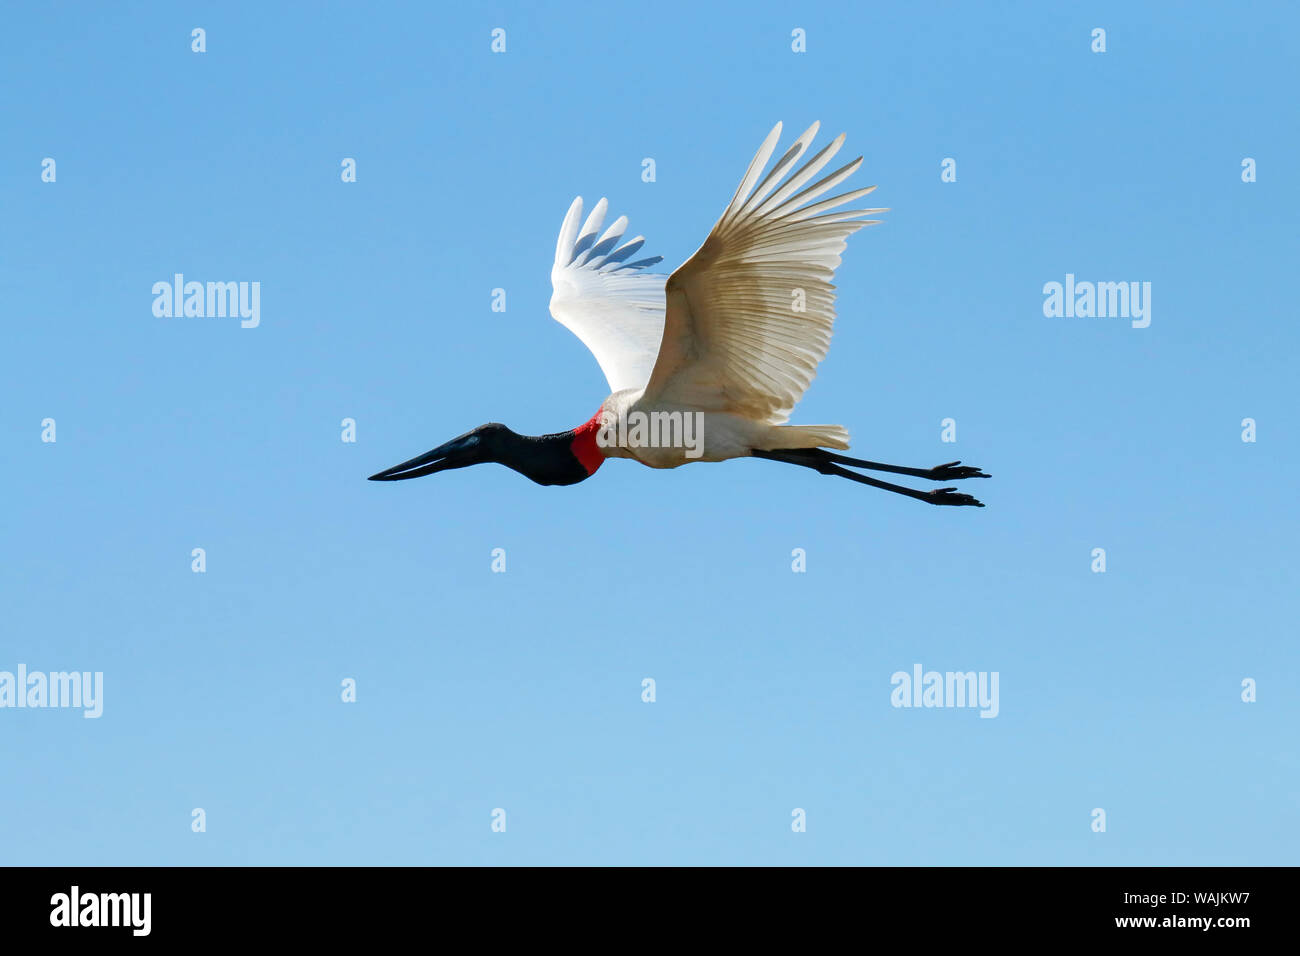 Jabiru Flying Stock Photos & Jabiru Flying Stock Images - Alamy